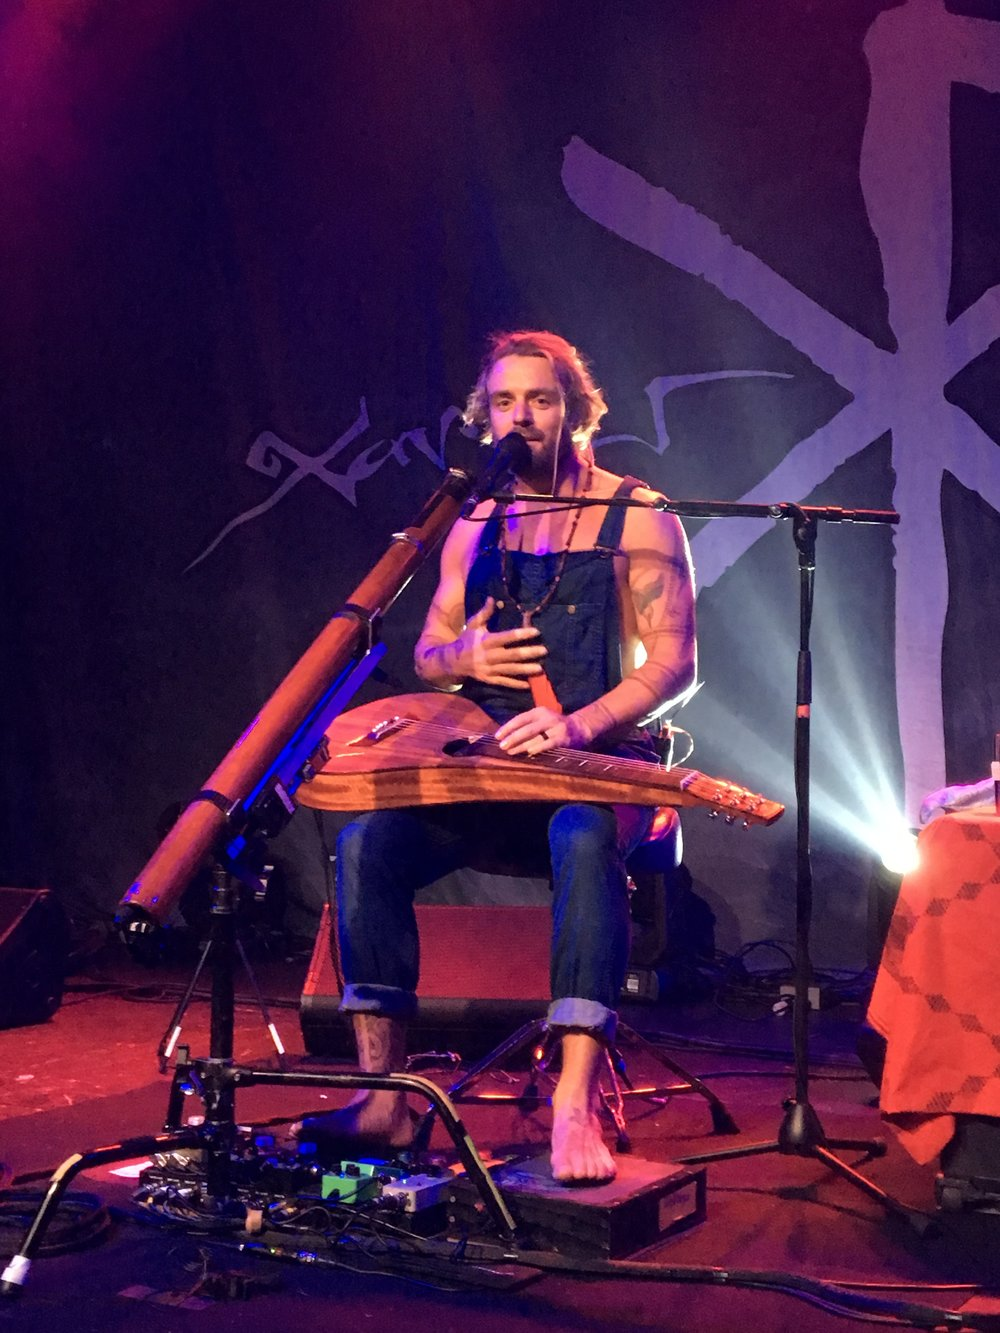 xavier rudd healing global vibration consciousness